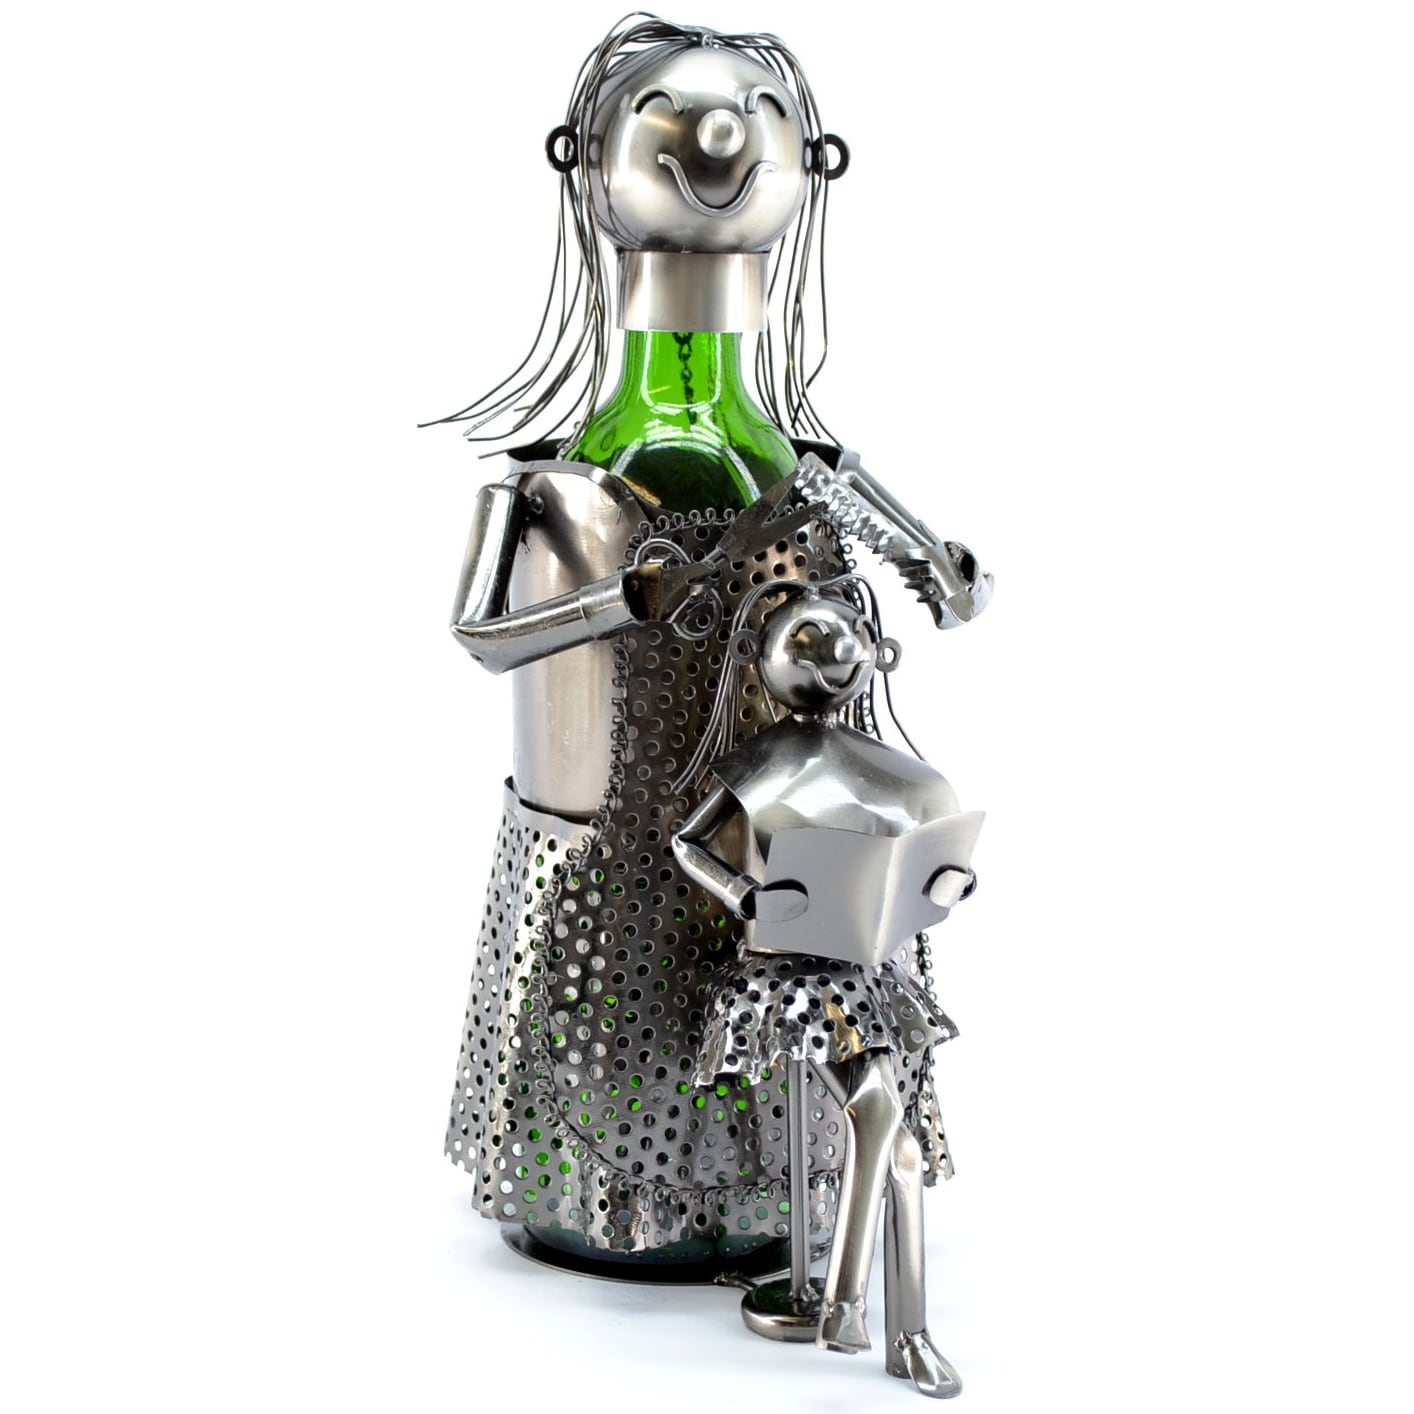 3starimex Wine Caddy Lady Hairdresser Wine Bottle Holder